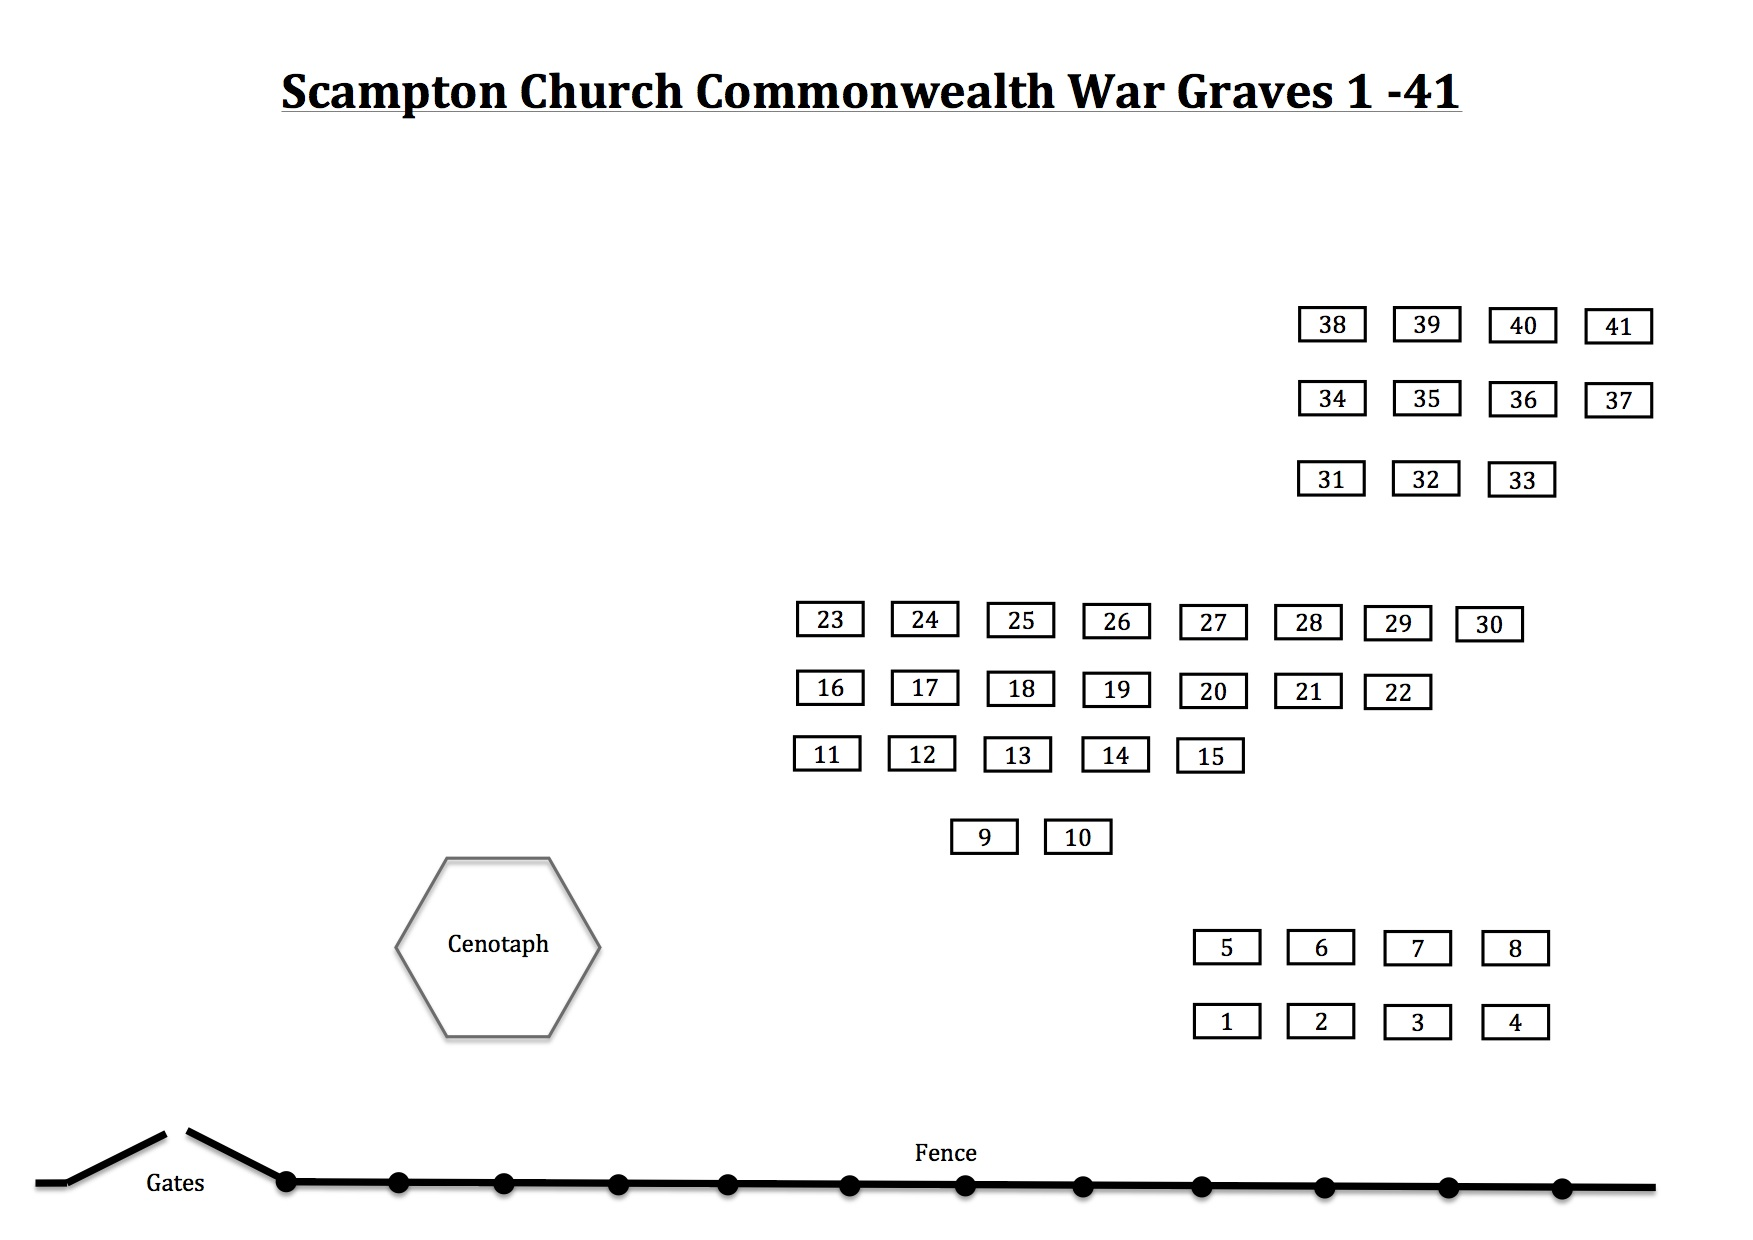 Scampton Church Commonwealth War Graves 1 - 41 PLAN WITHOUT NAMES